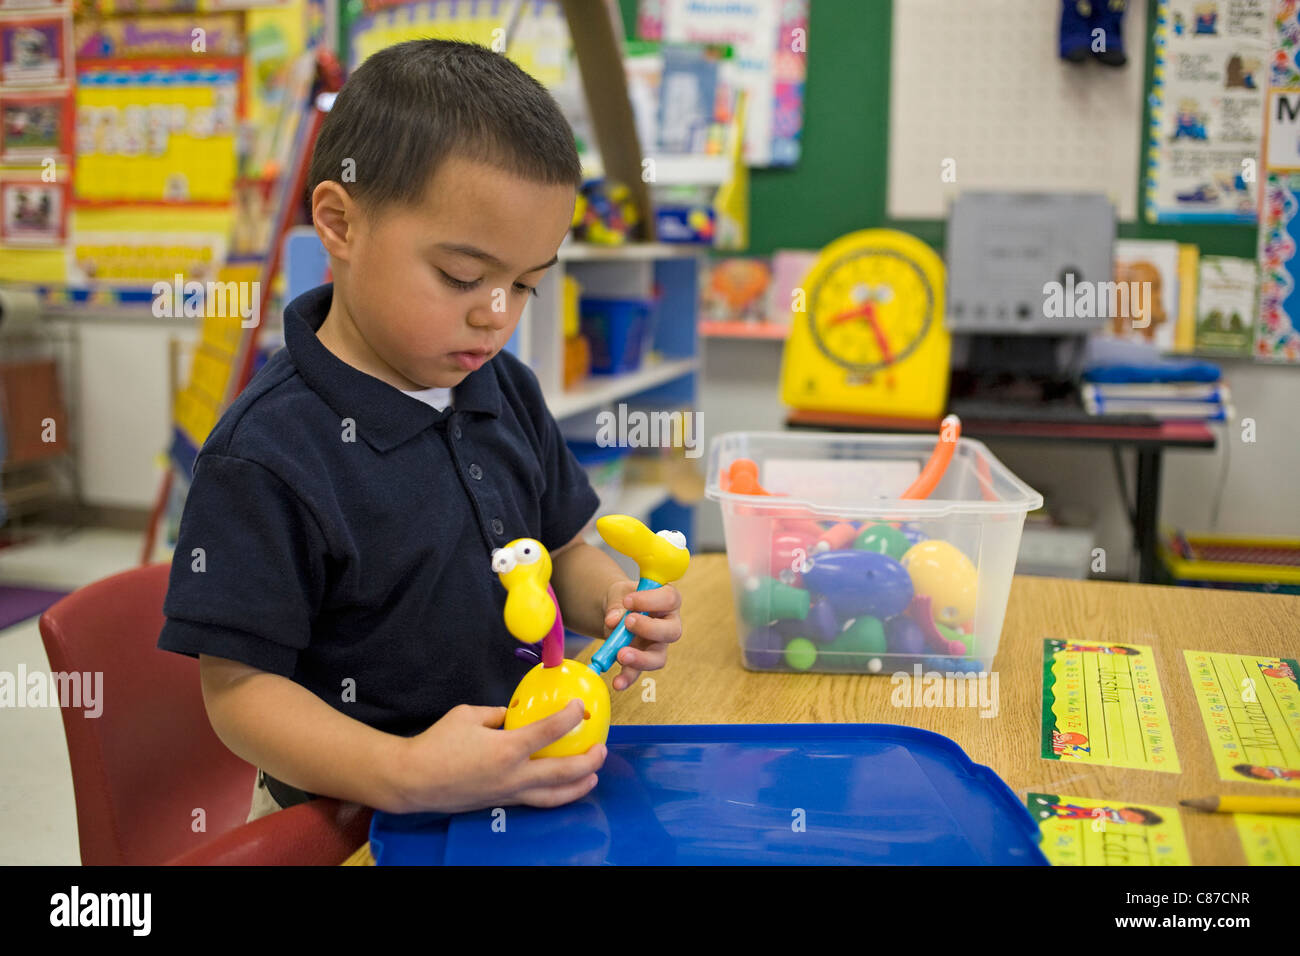 4 year old Caucasian preschool boy playing with a toy on a table in the school classroom, - Stock Image